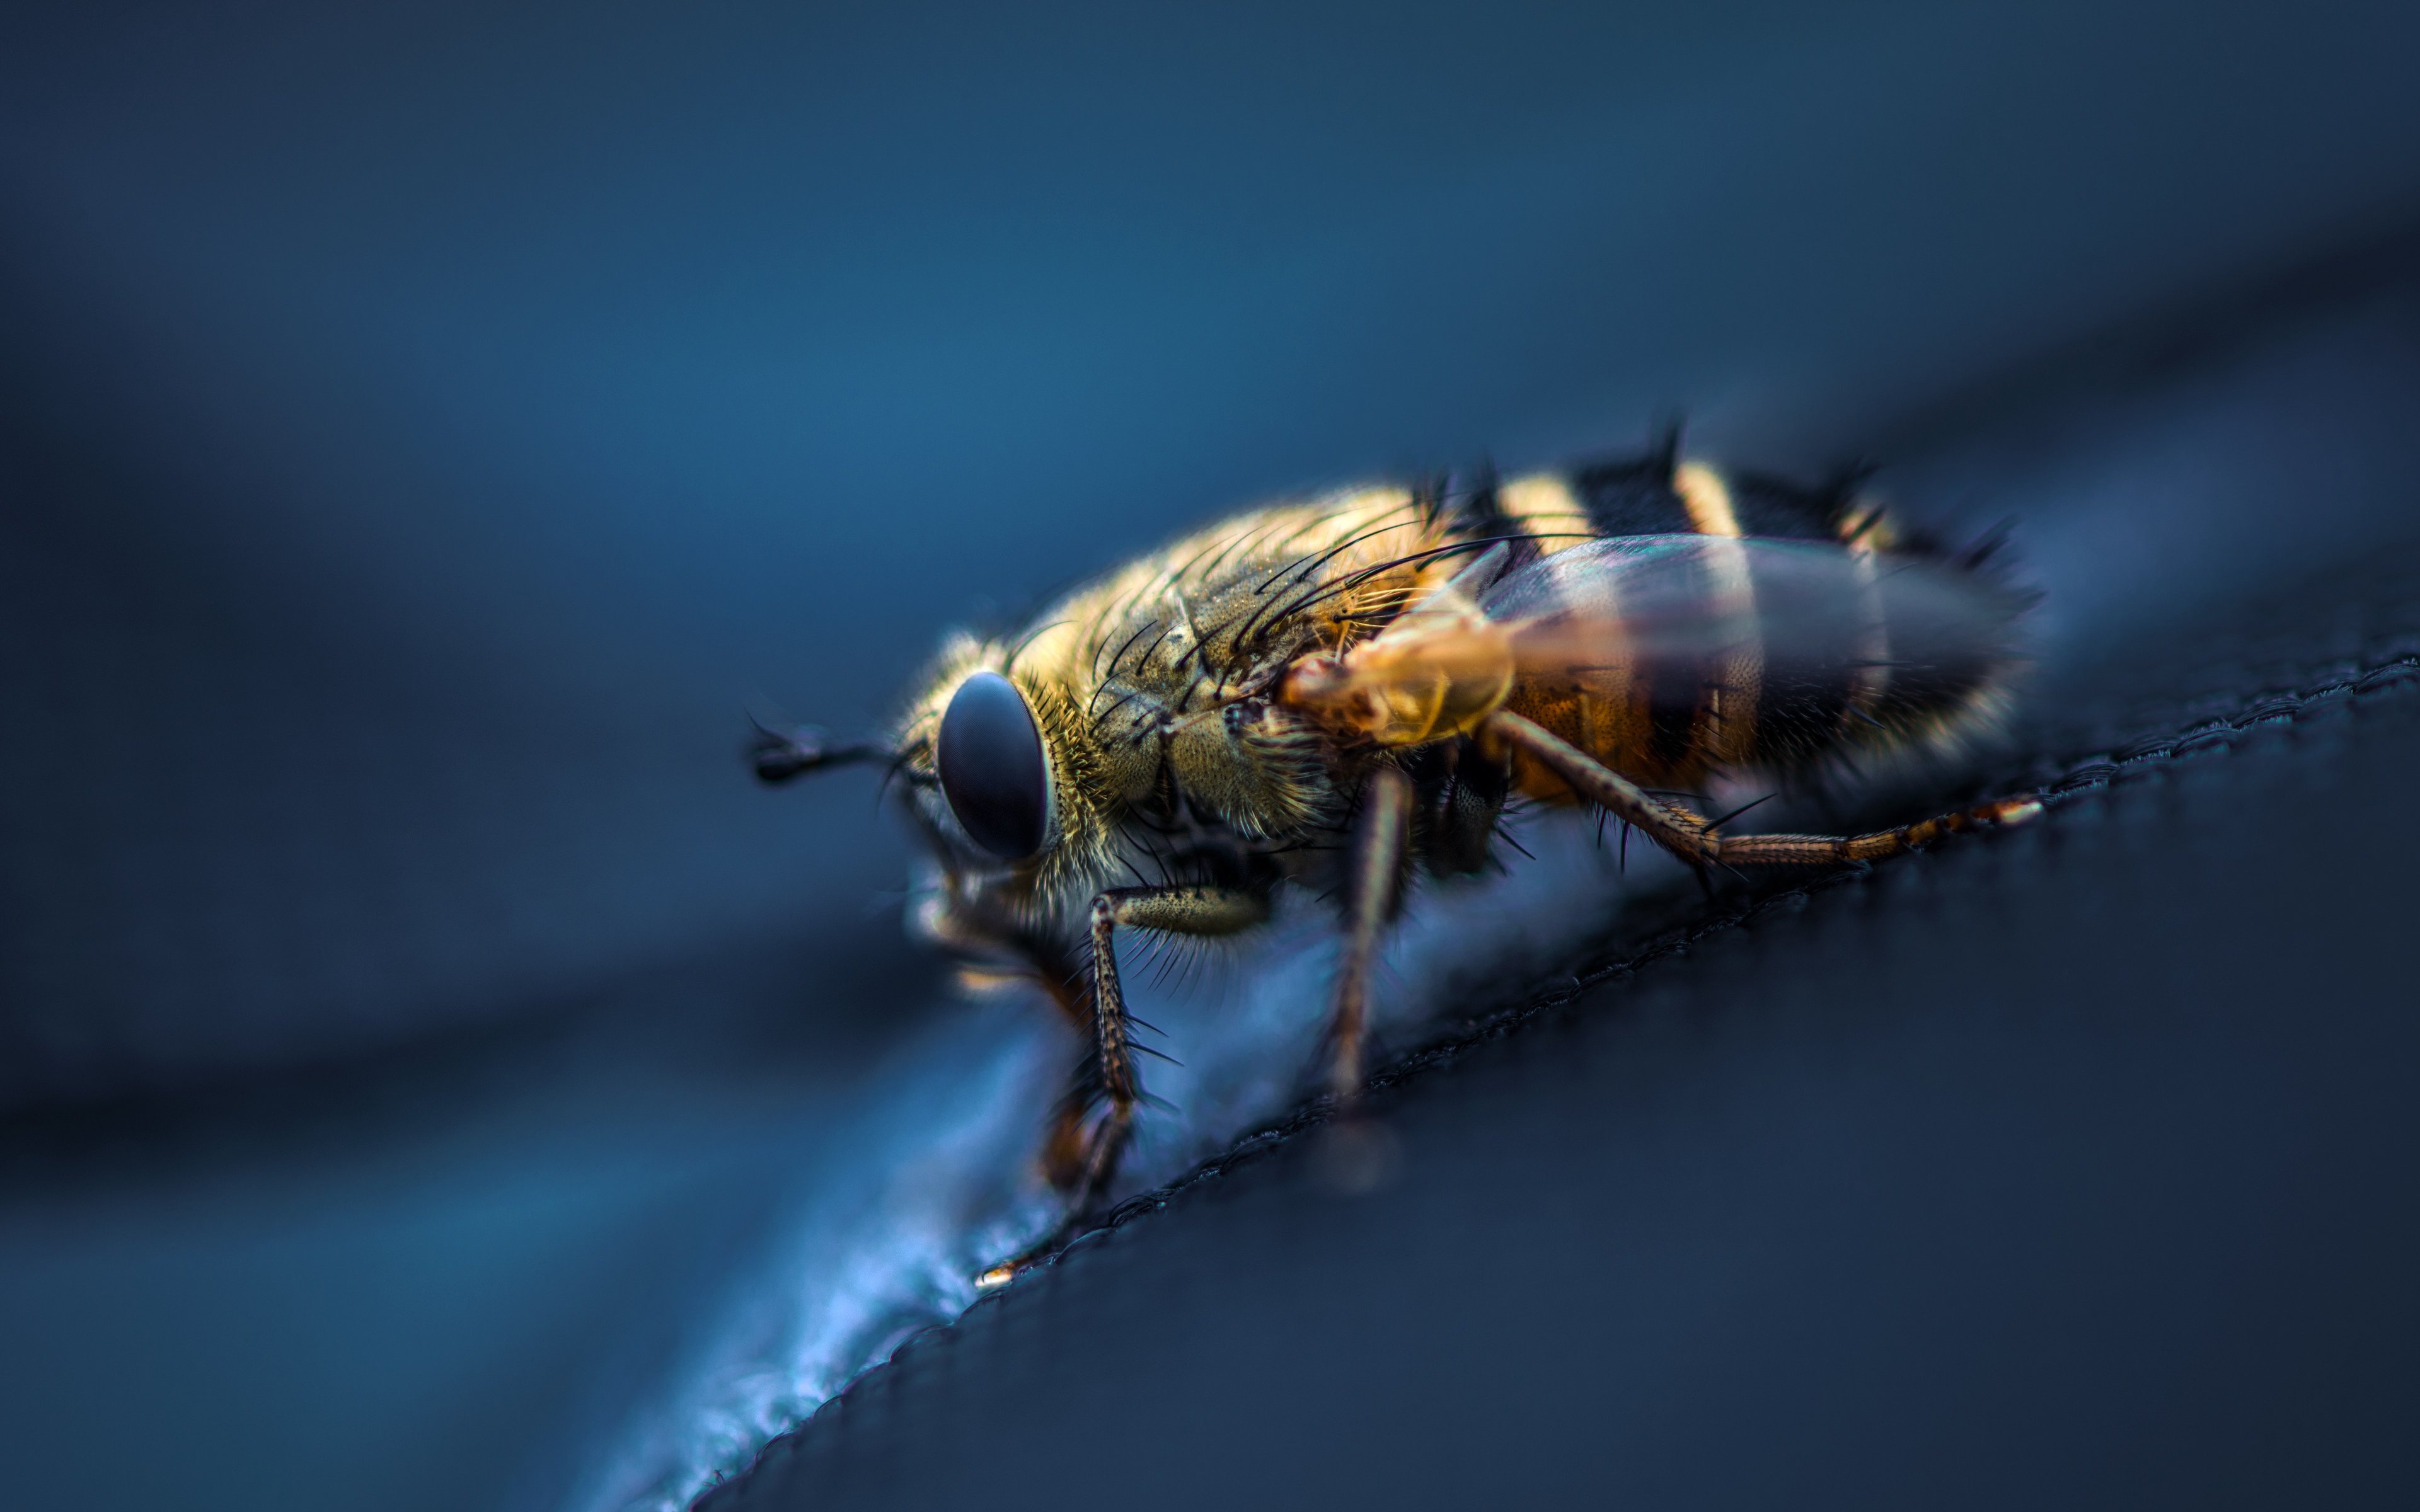 Download wallpapers 3840x2400 fly, insect, macro, eyes, wings